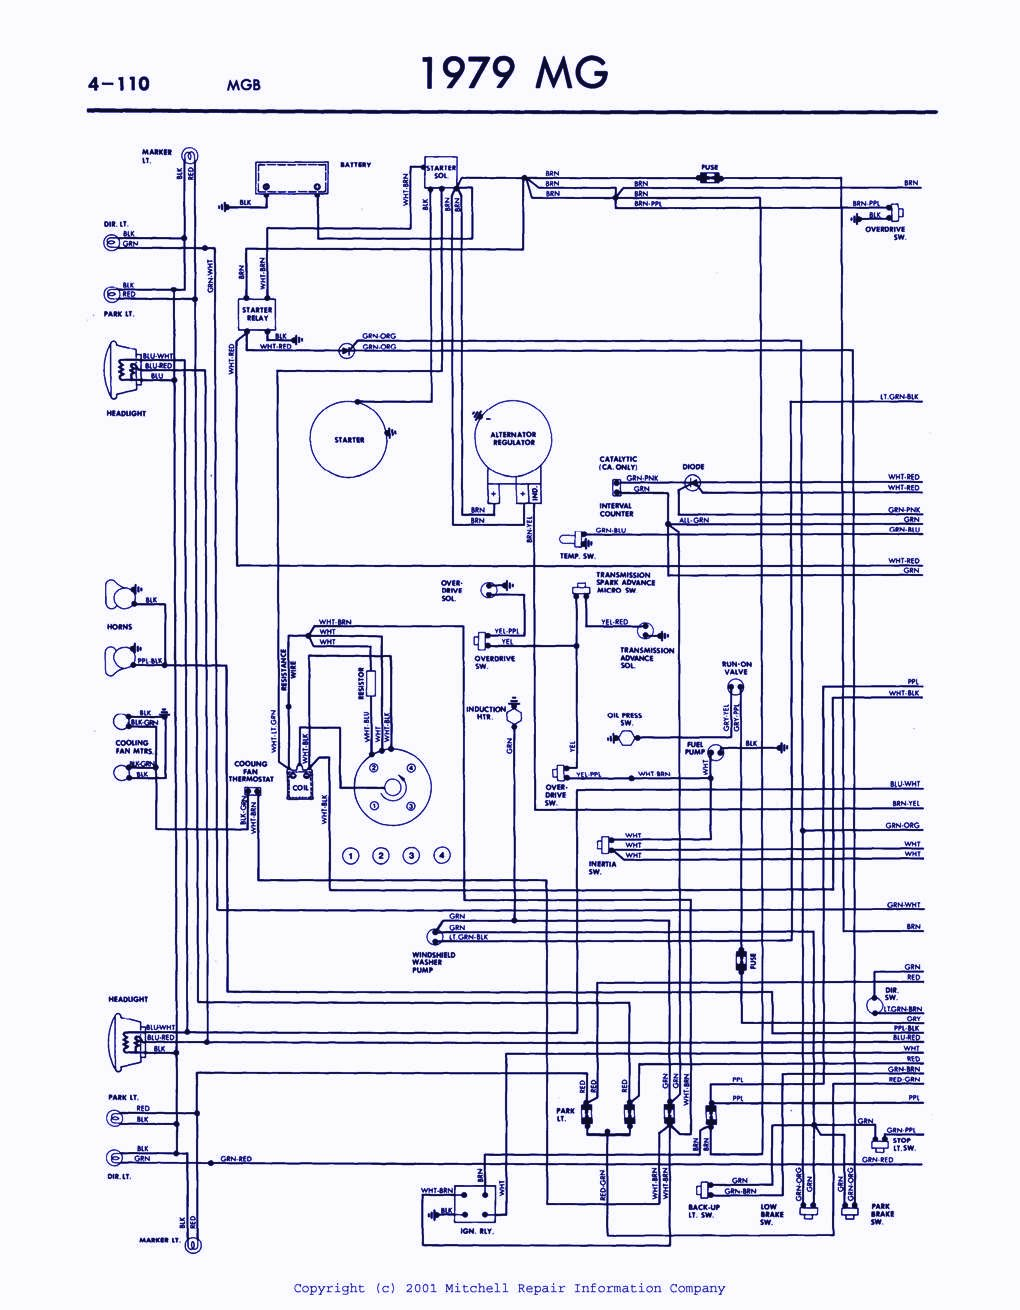 Wiring Diagram For Mgb Overdrive : Mg mgb wiring diagram auto diagrams